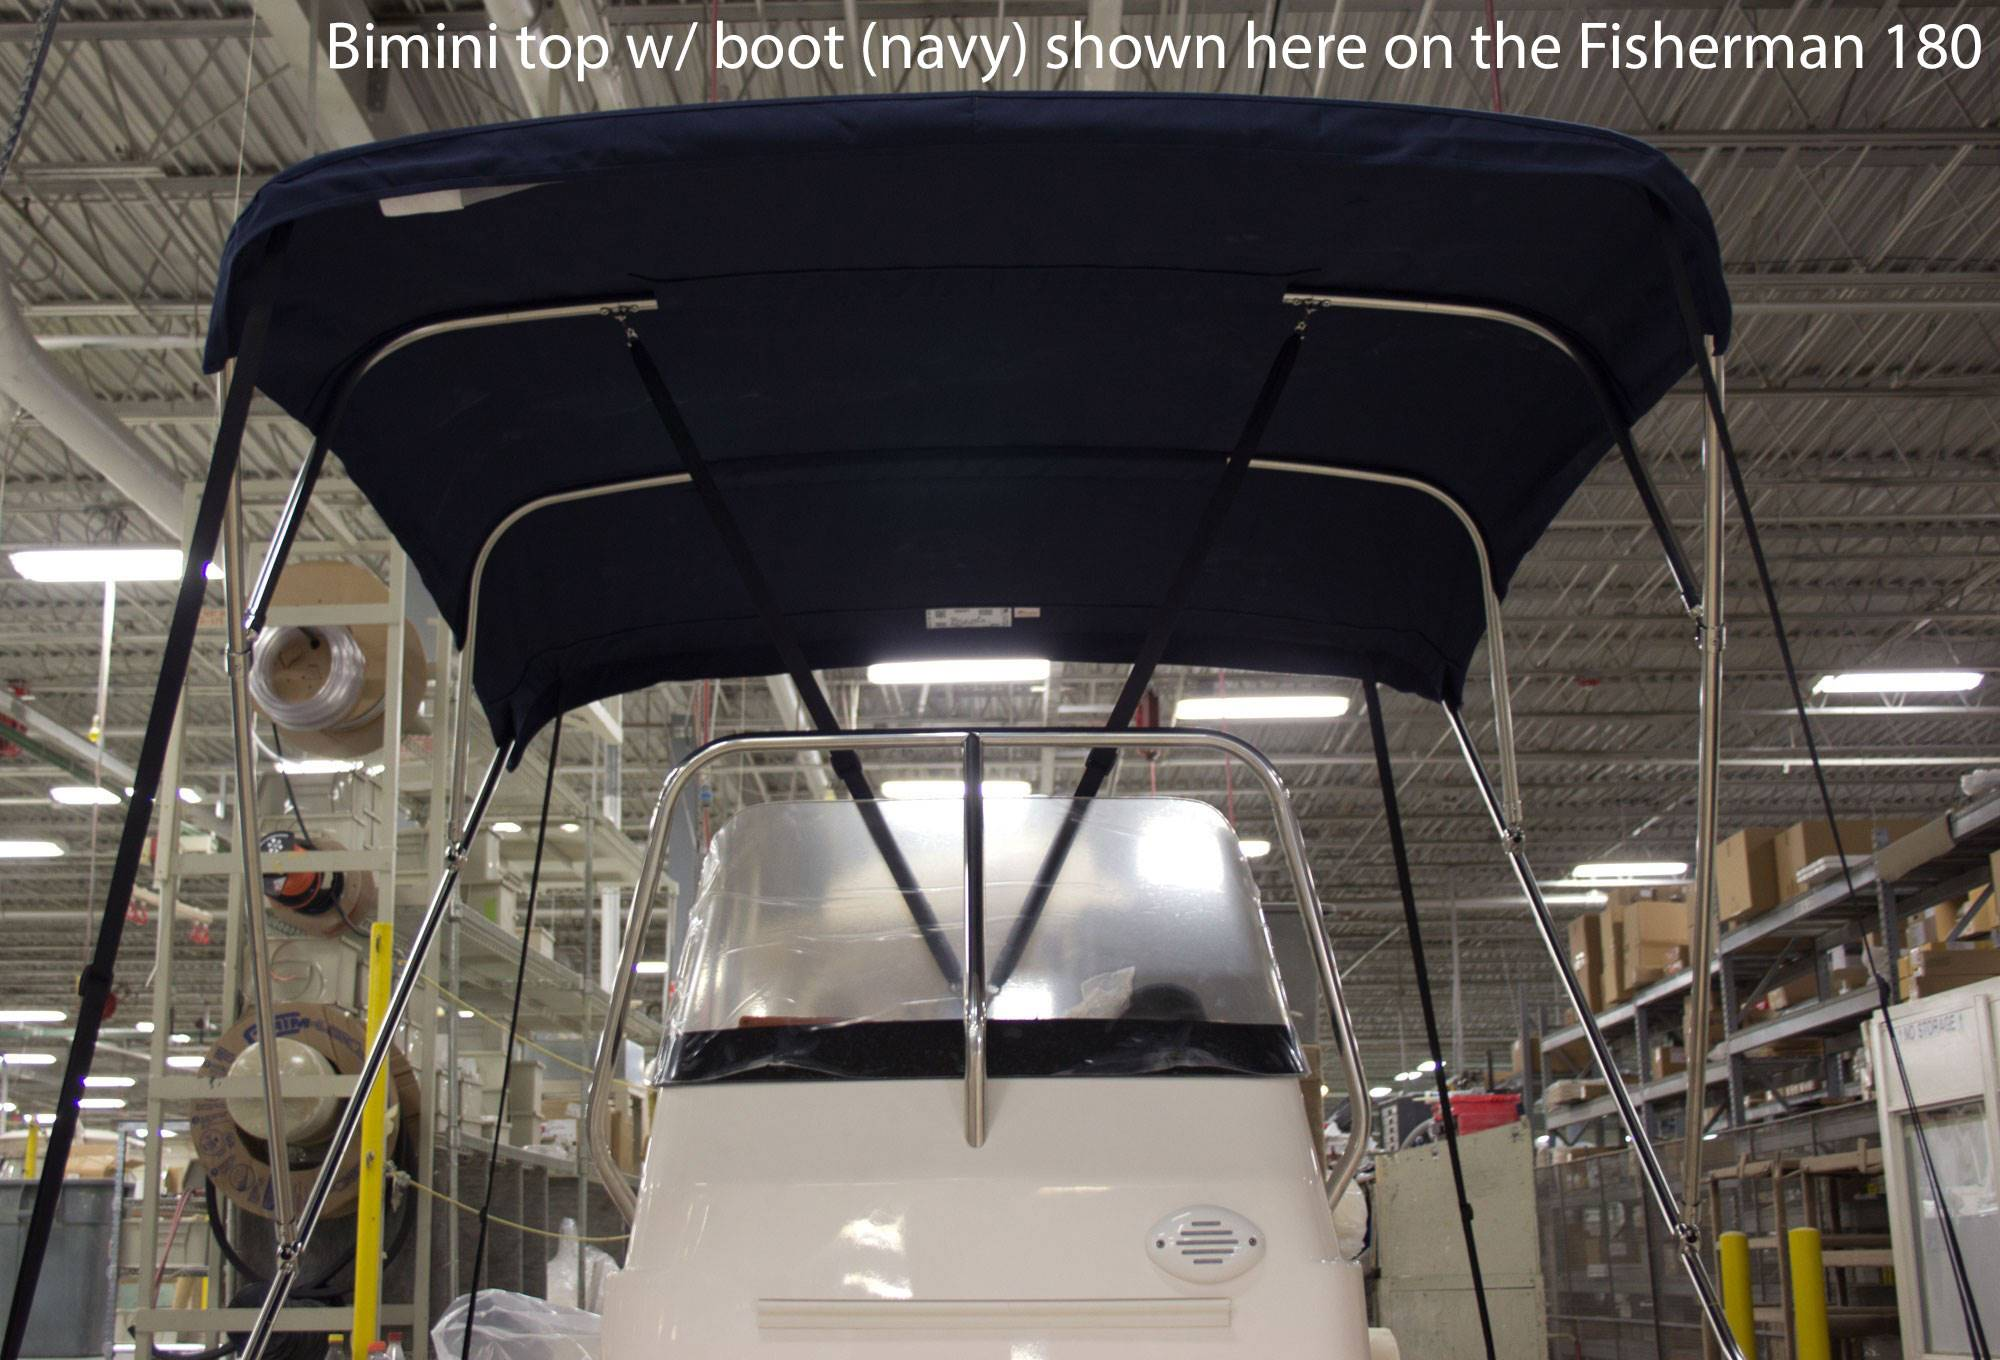 Fisherman 216 with Bimini Top